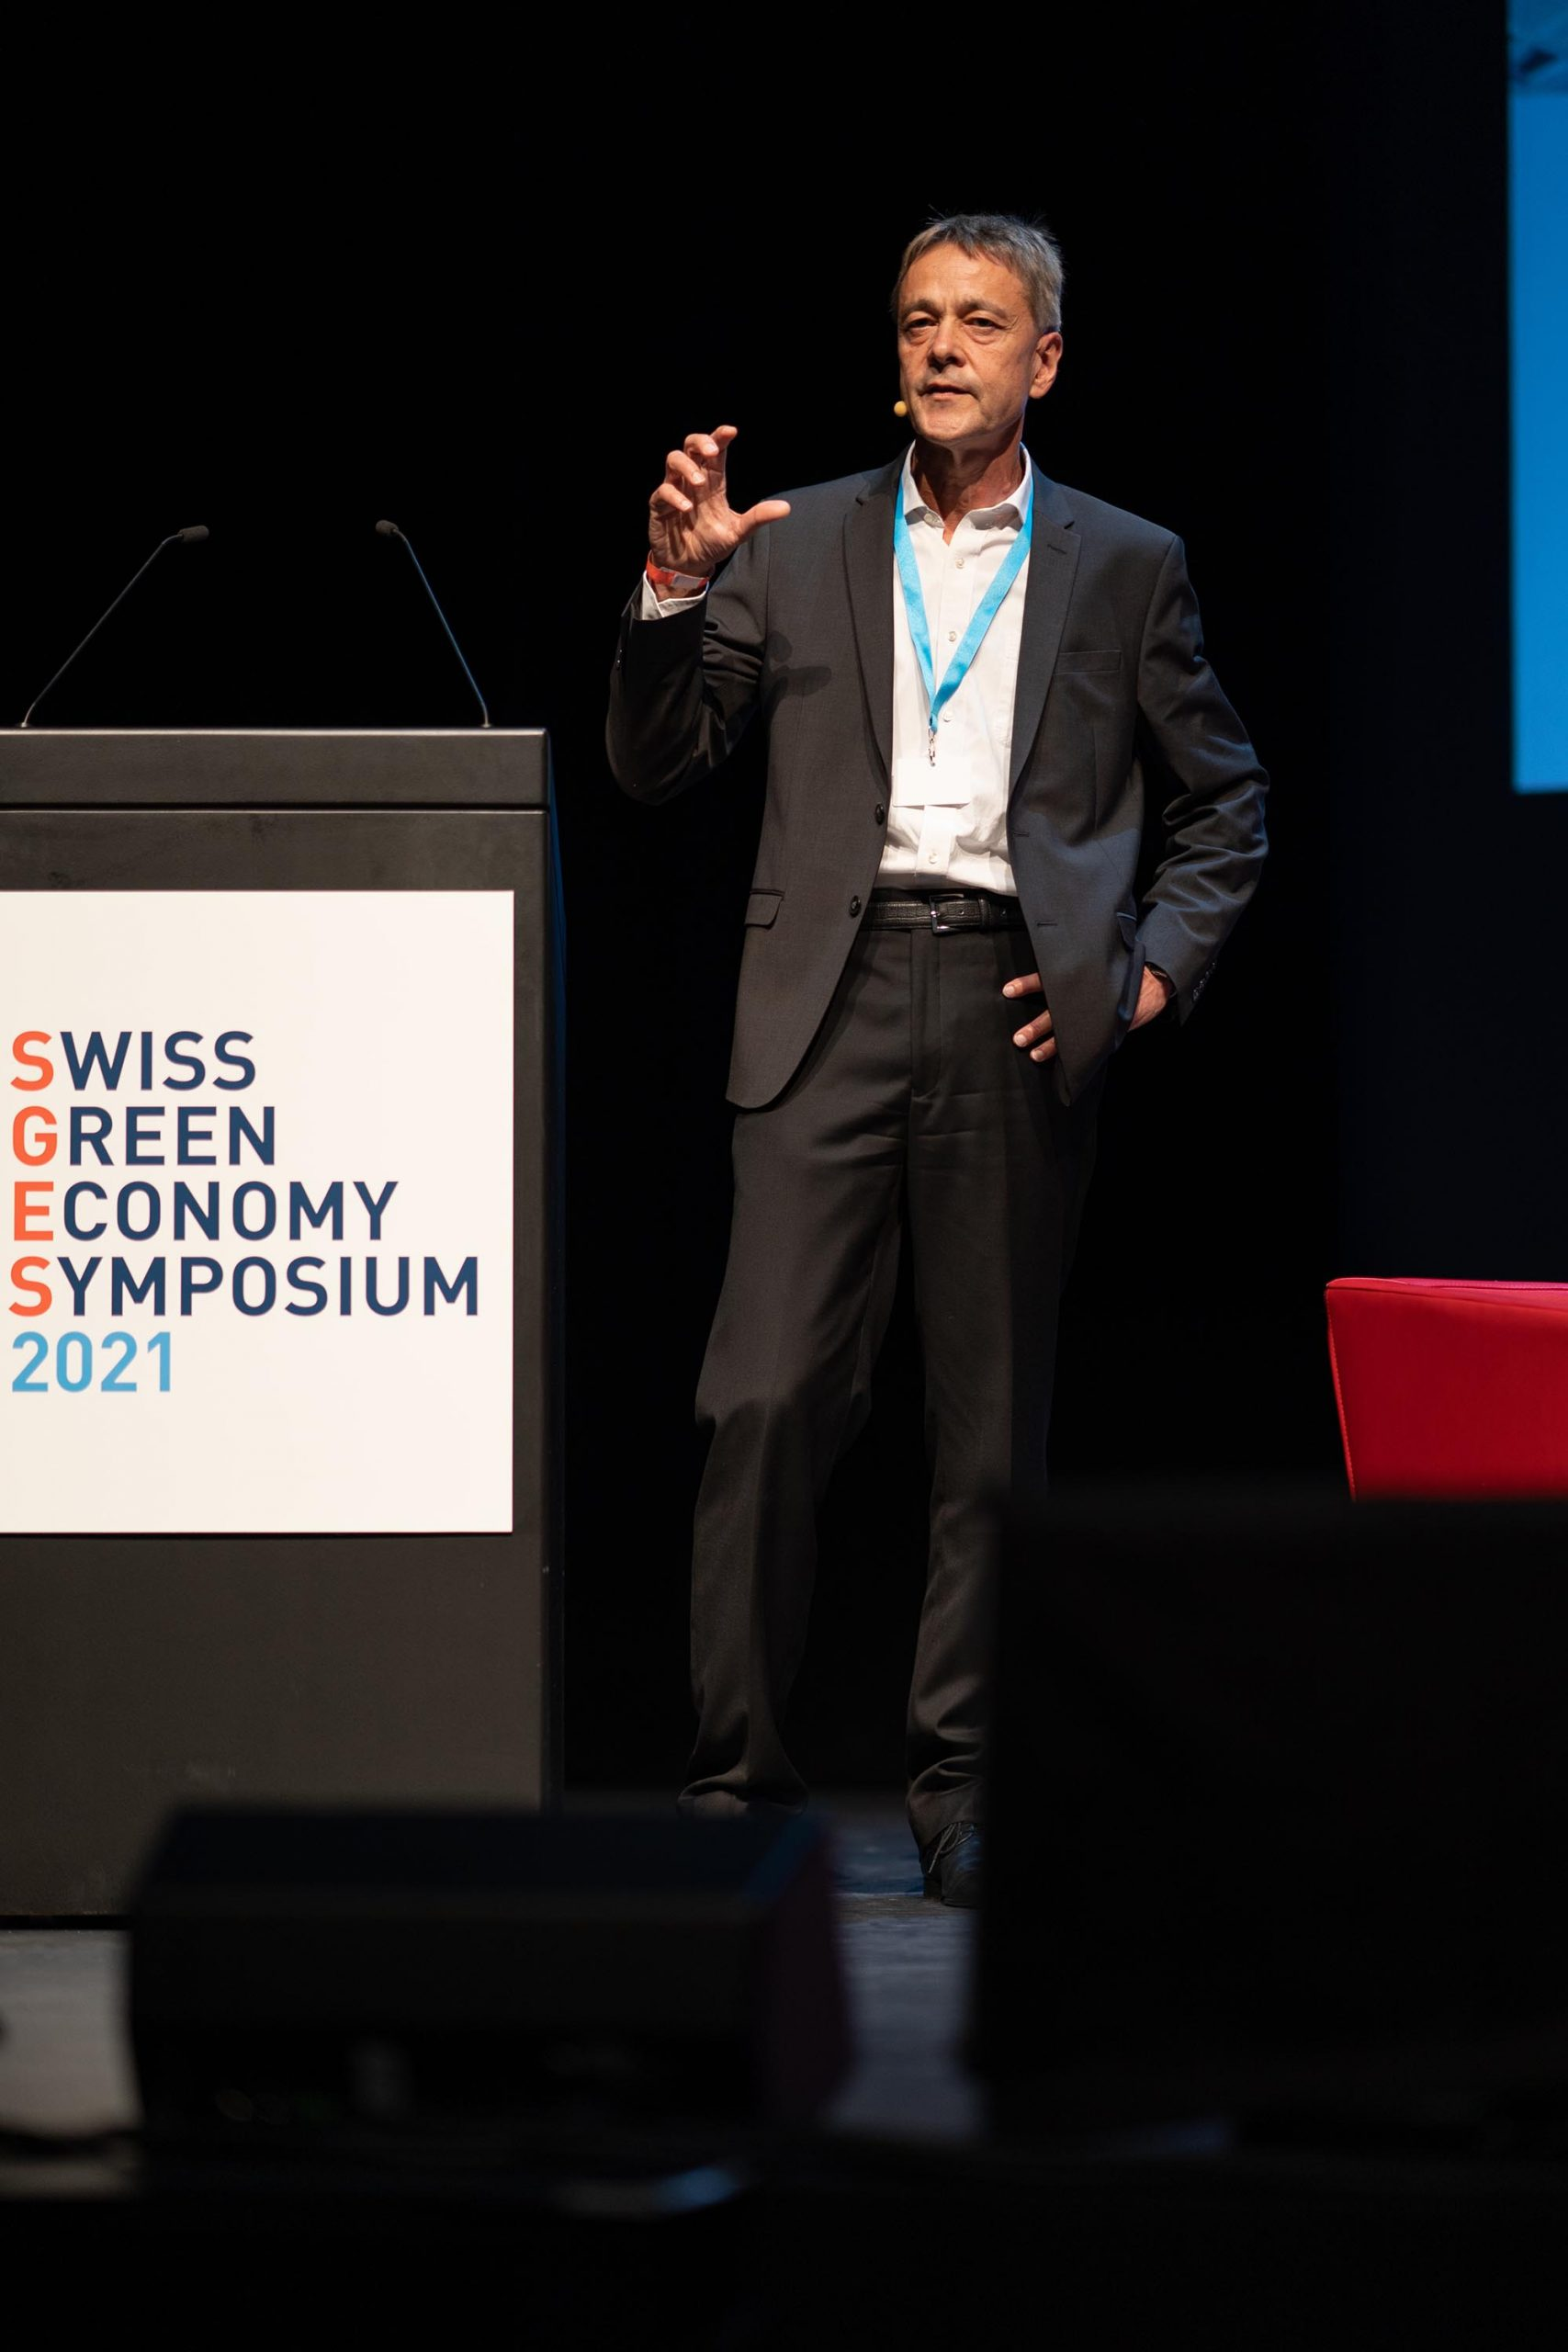 SGES Keynote: Dr. Bernhard Eschermann, Chief Technology Officer of ABB's Process Automation business, Head of Process Control Platform and member of ABB's Group Technology Leadership Team